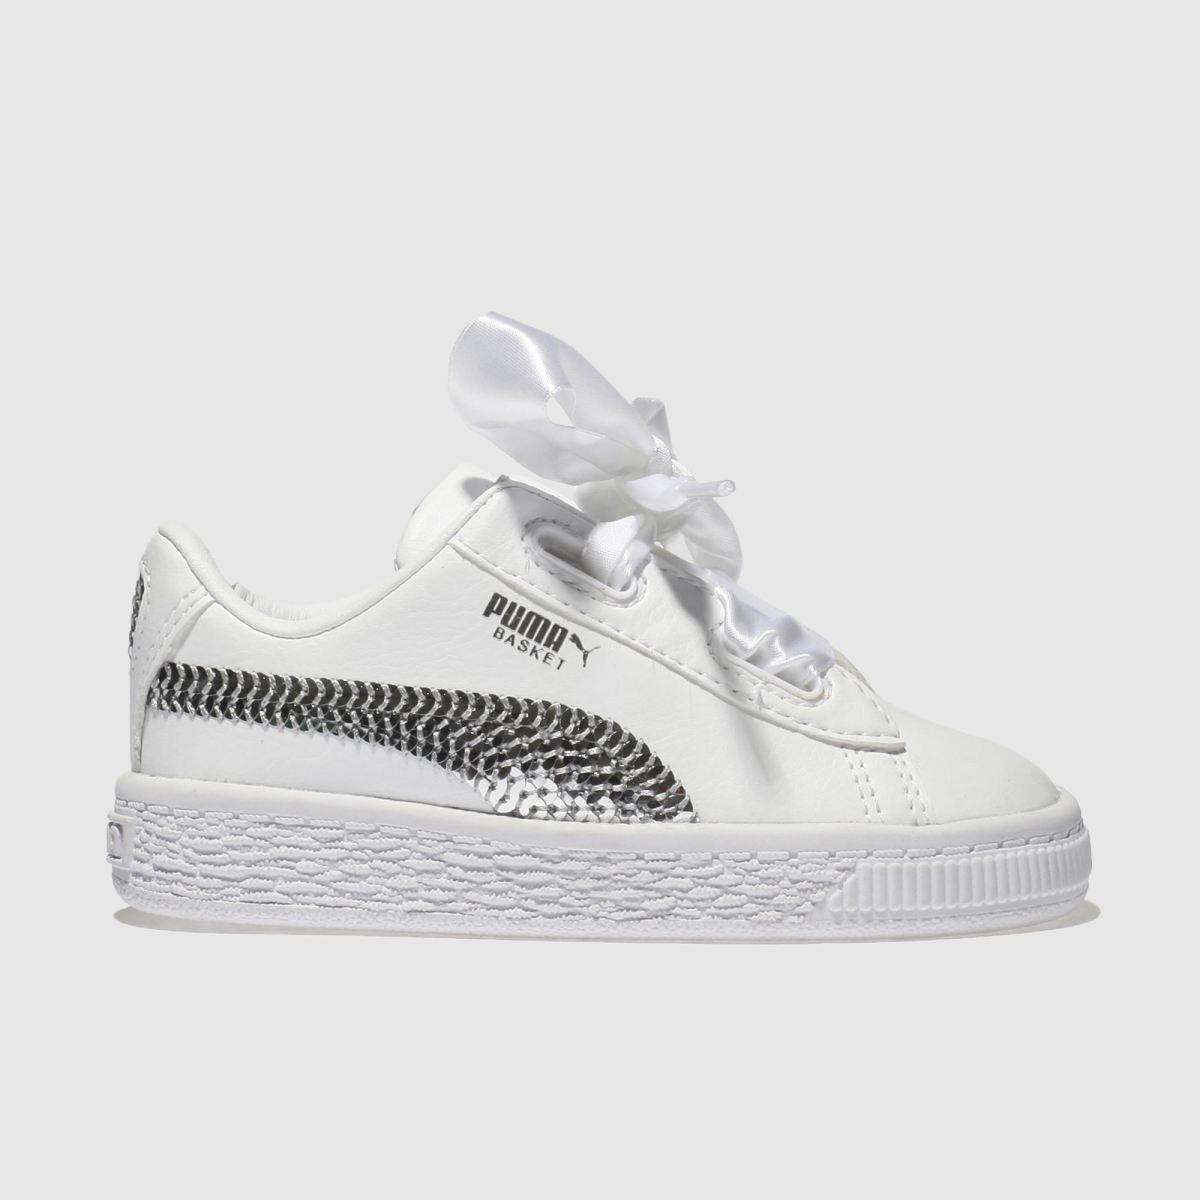 Puma White & Silver Basket Heart Bling Girls Toddler Toddler